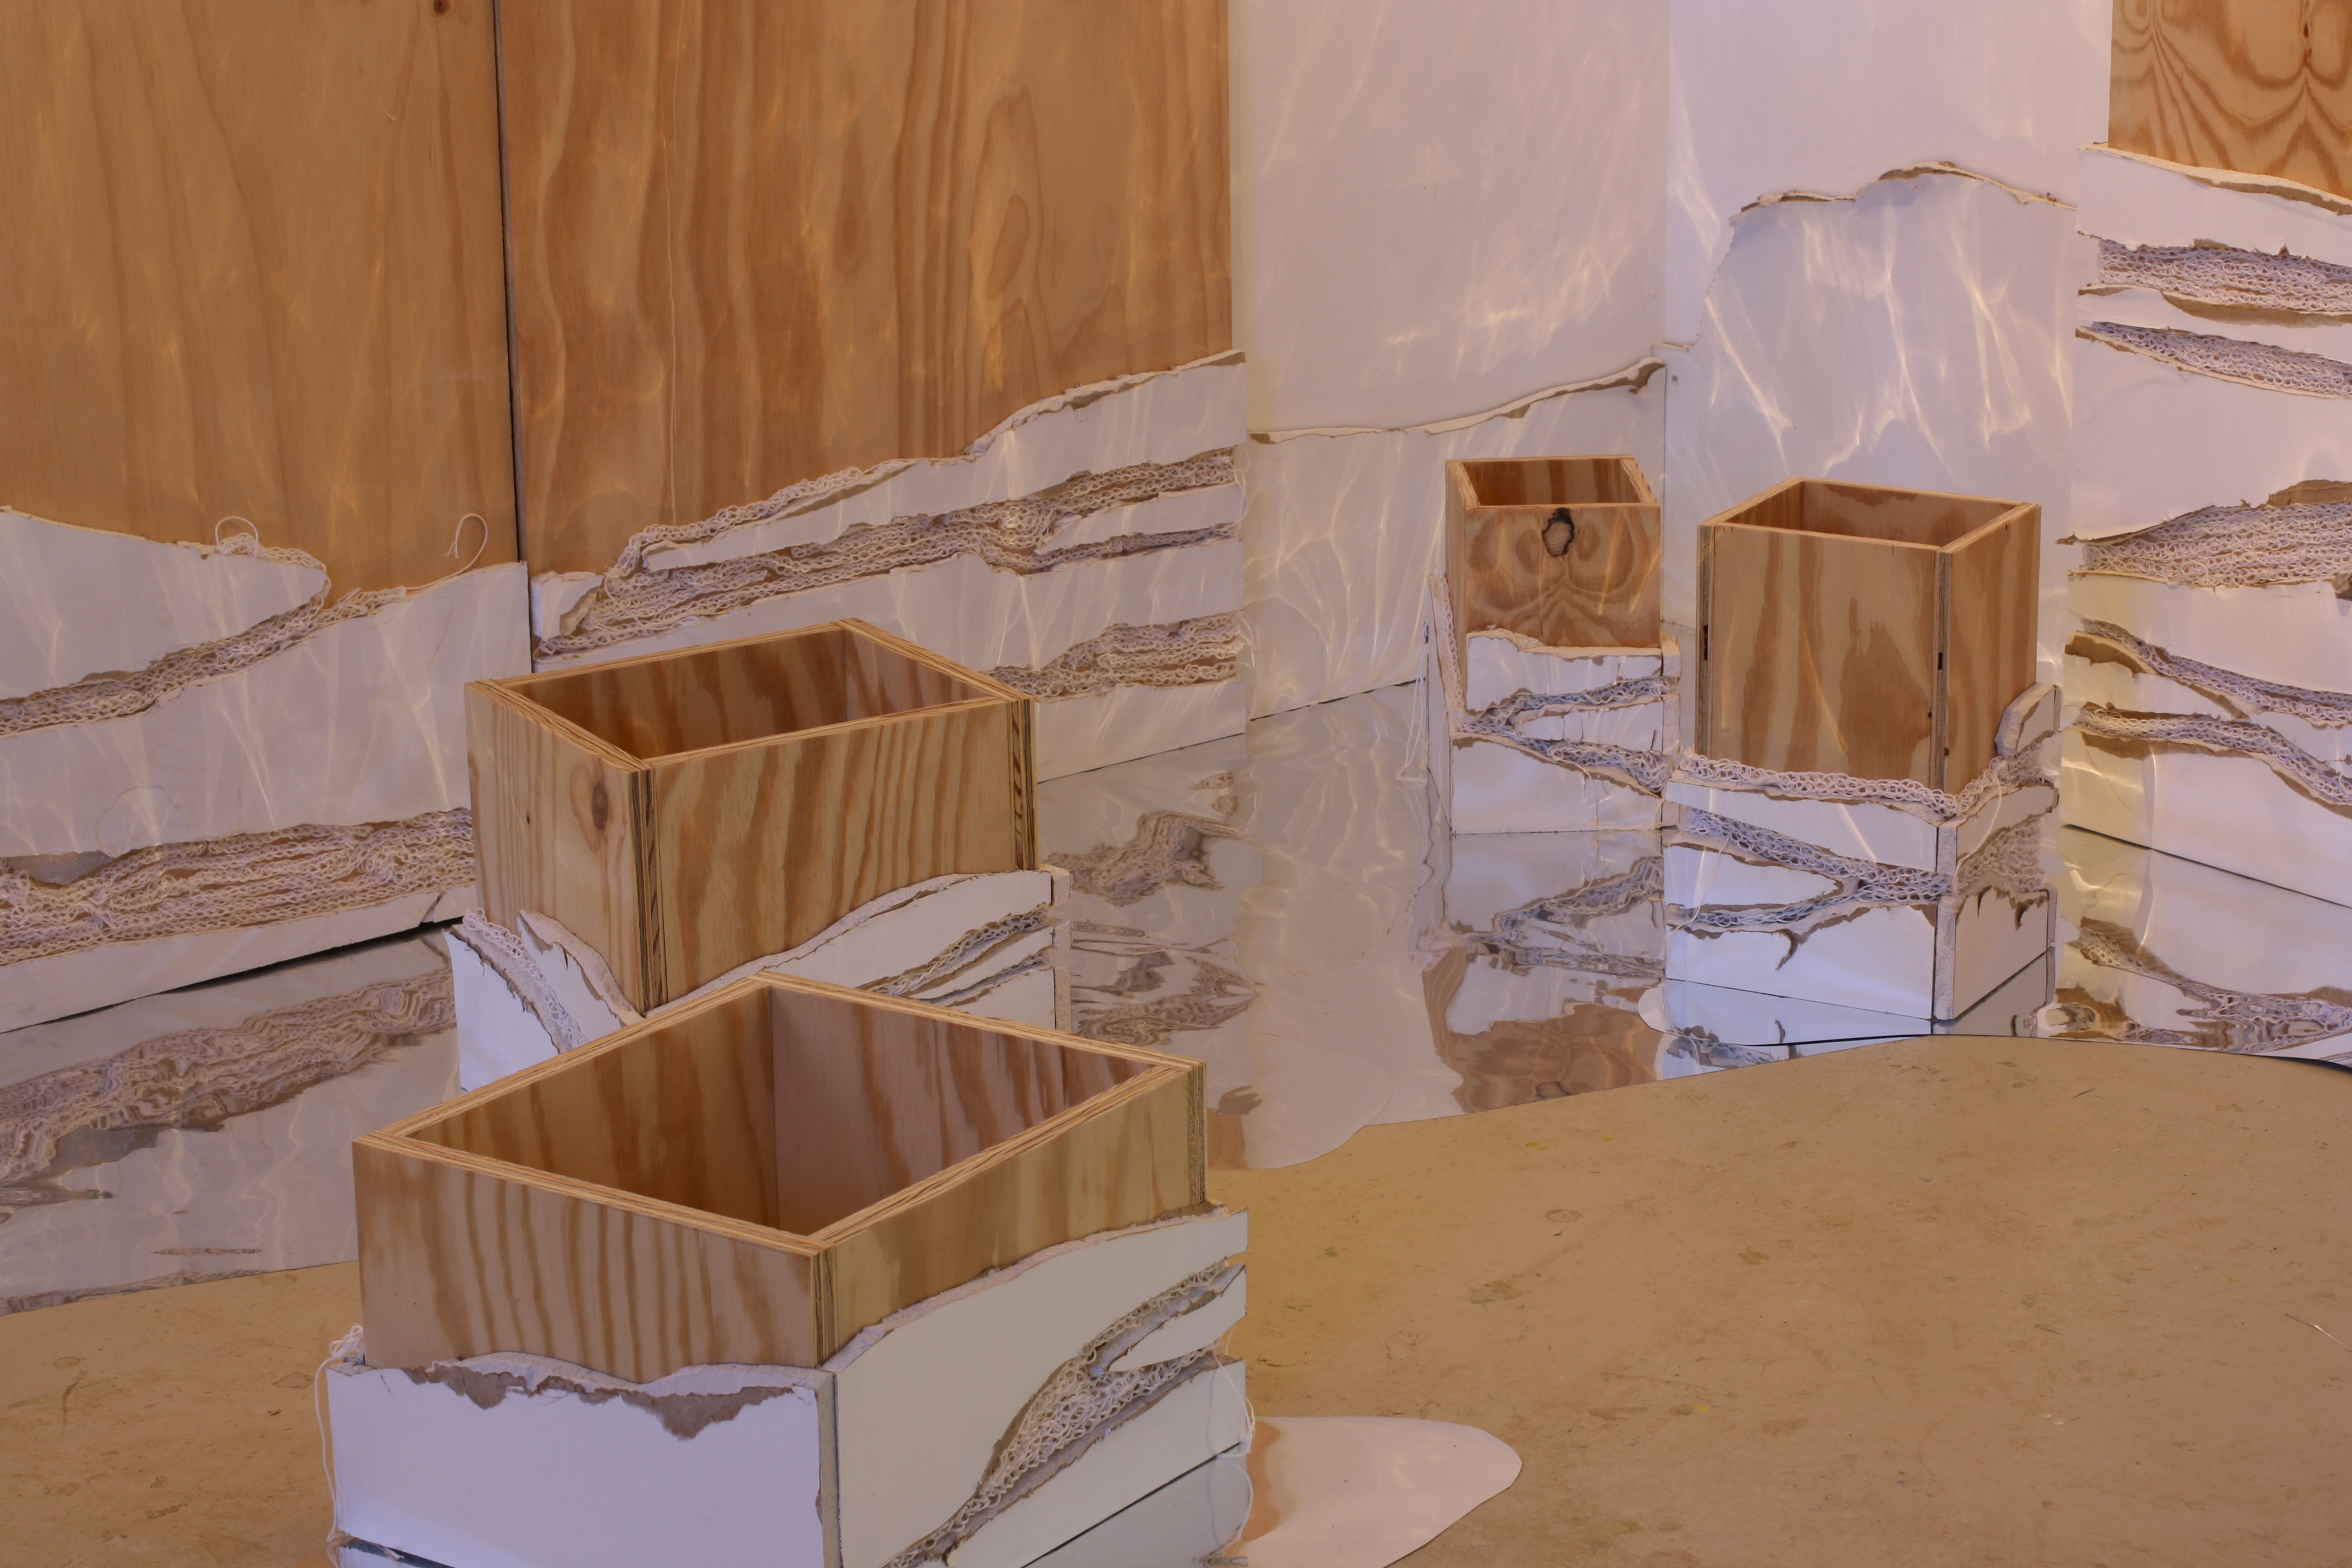 drywall boxes